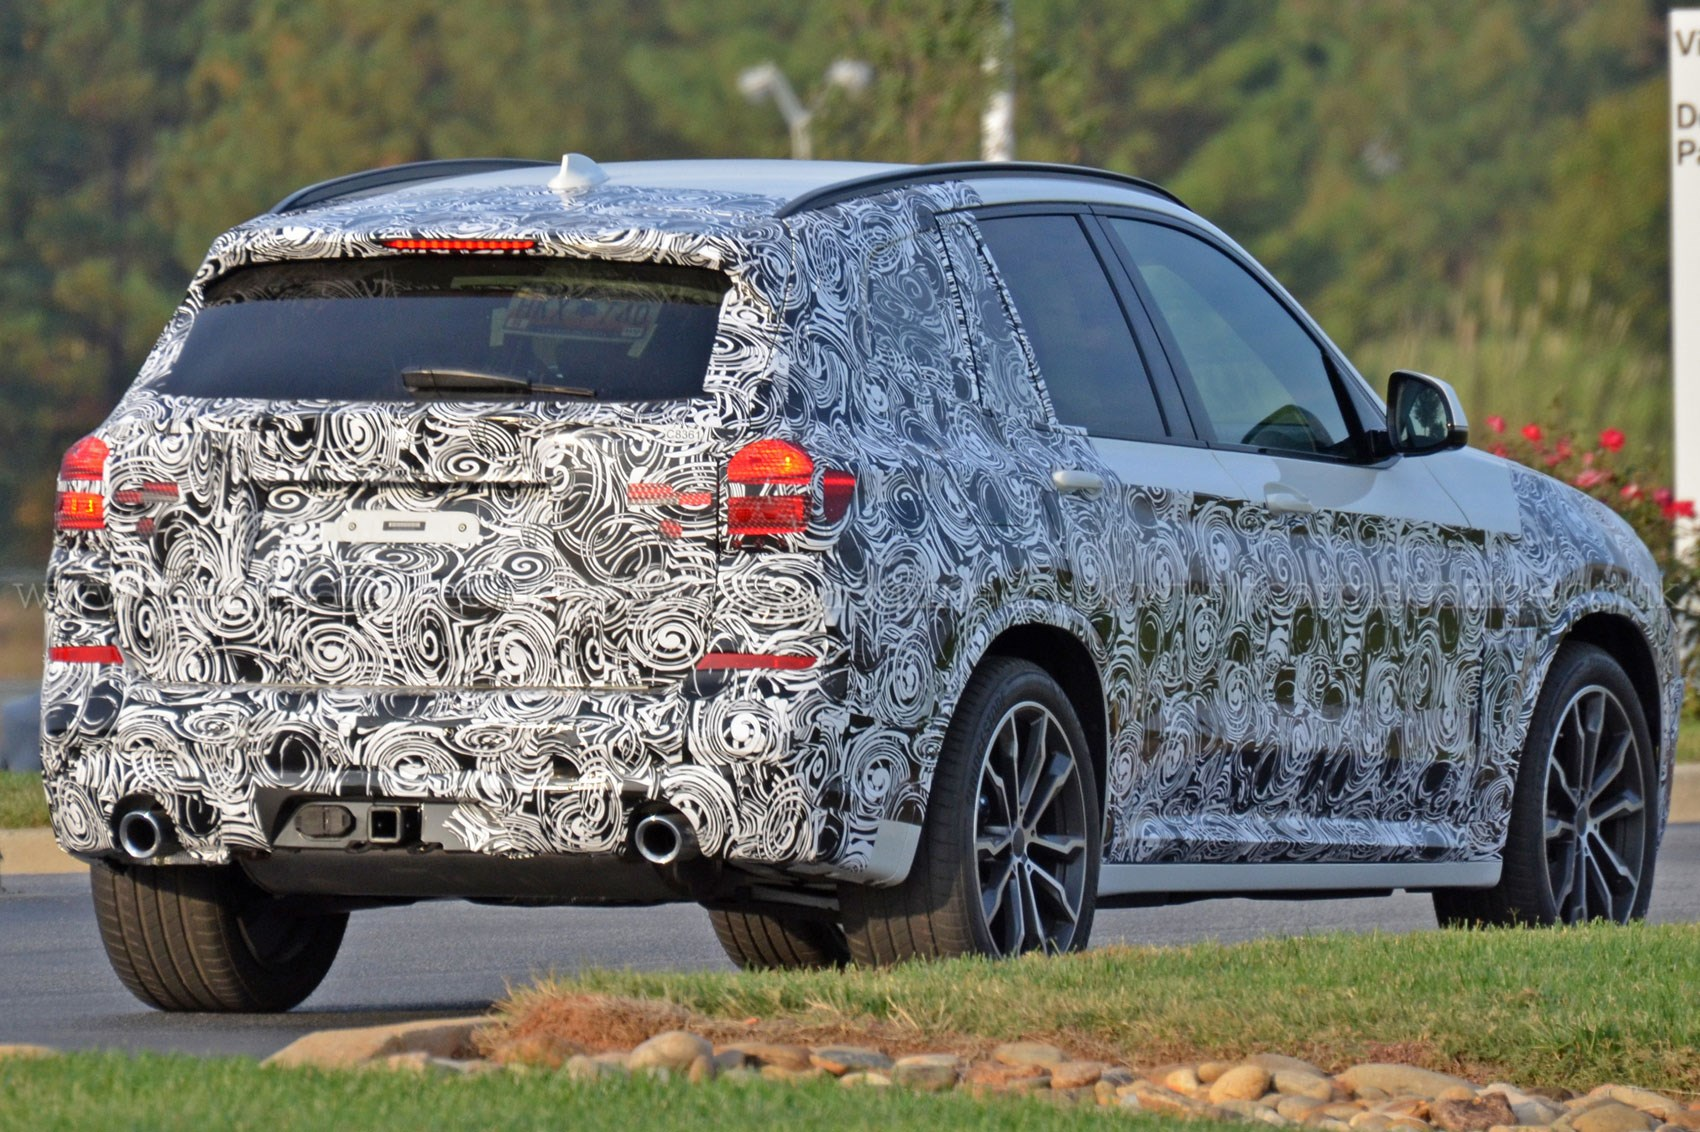 2018 BMW X3 G01 New Spy Shots And Official Release Date >> The Next Bmw X3 Spied Full Scoop On 2017 S G01 Suv Car